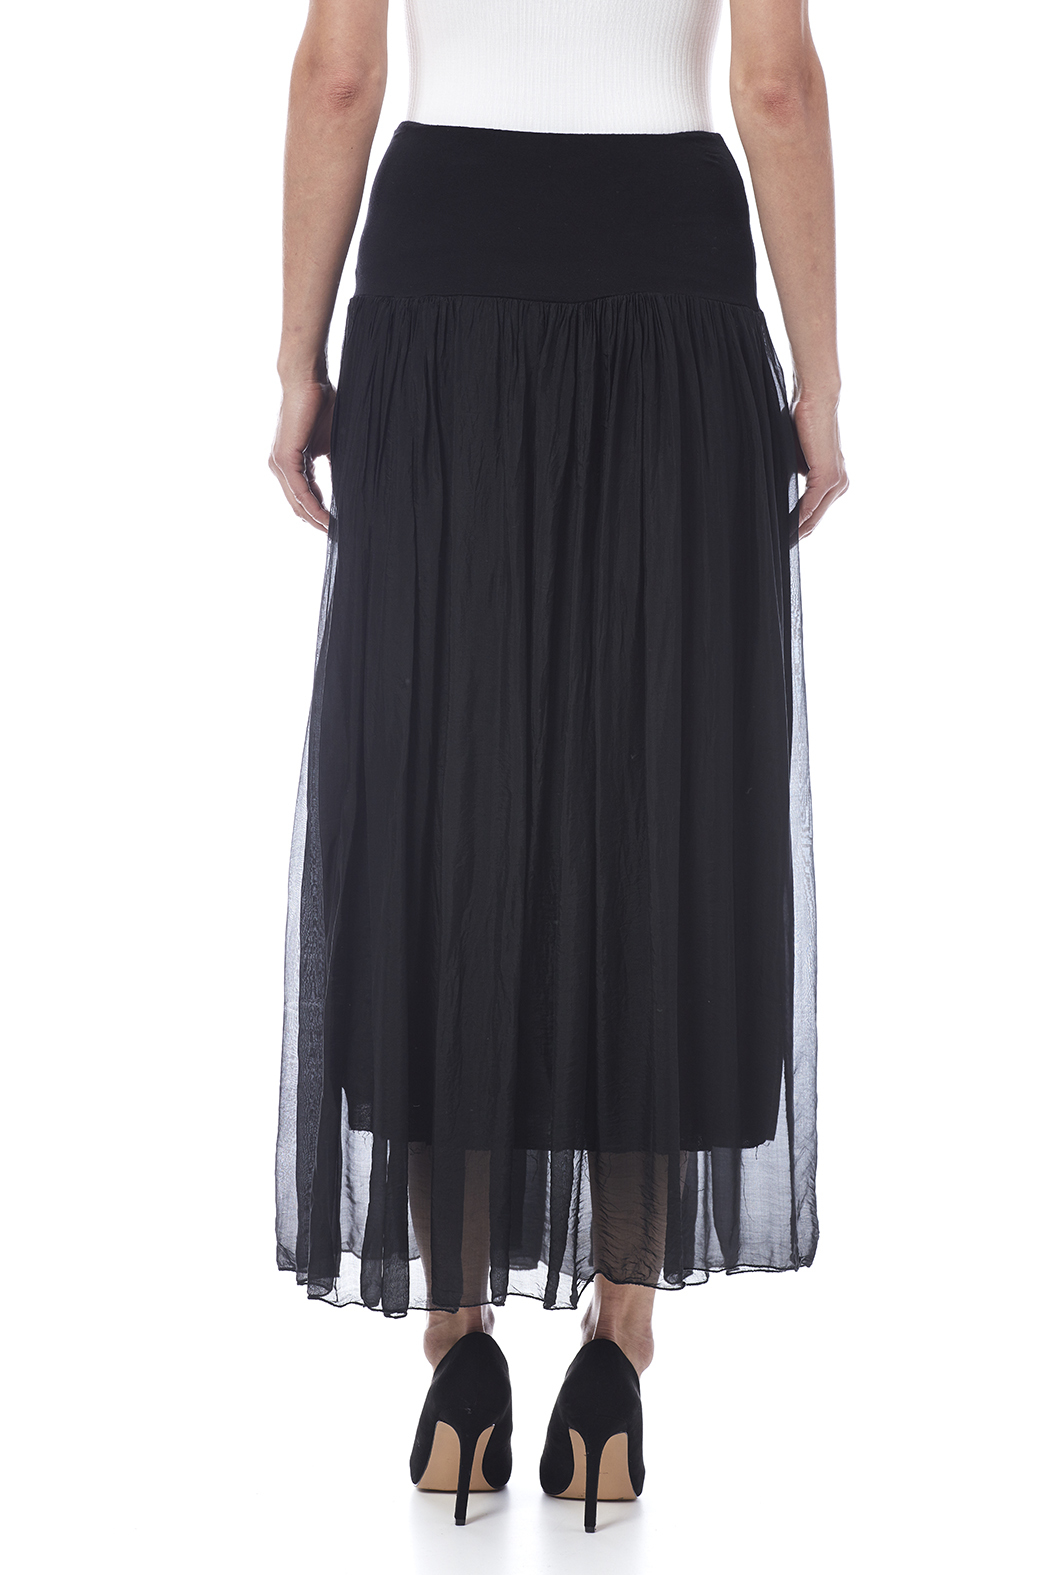 tu-anh boutique Black Silk Maxi Skirt from Alexandria by tu-anh ...